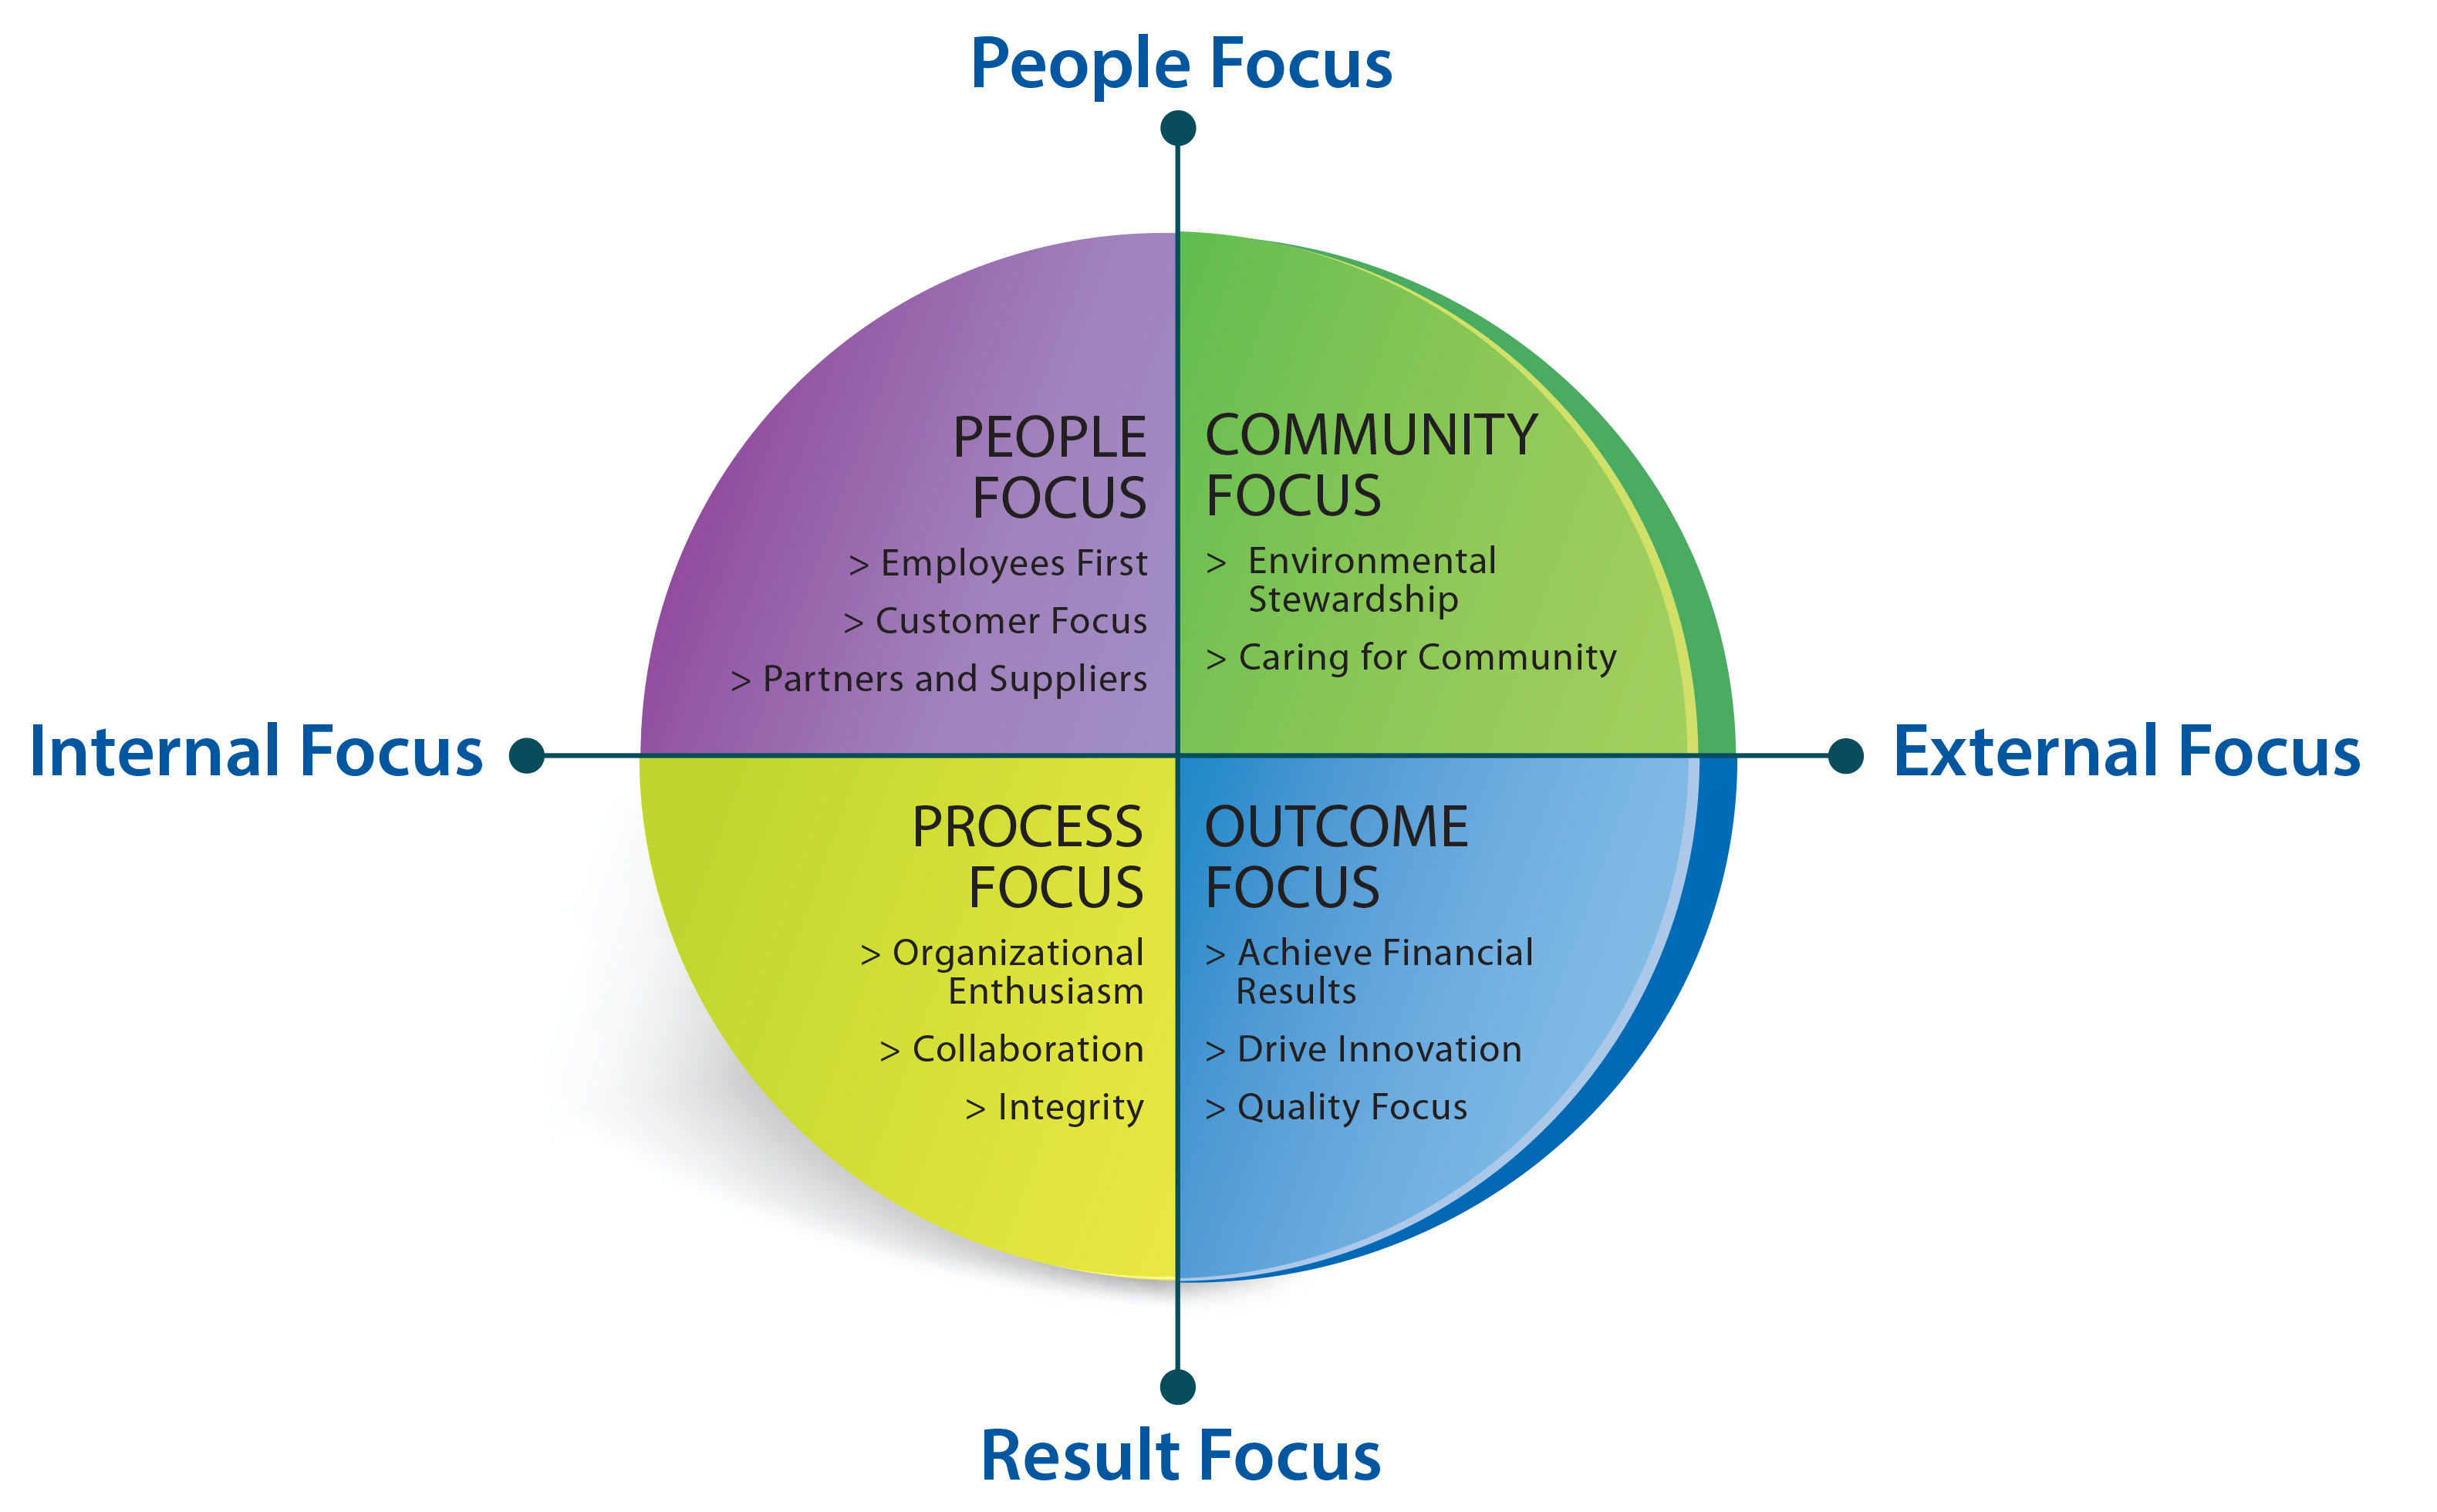 organisational cultur An organization's culture is evidenced in its values, policies, attitudes, structures, and beliefs it is a tangible asset that impacts morale and company performance, and it can be built.